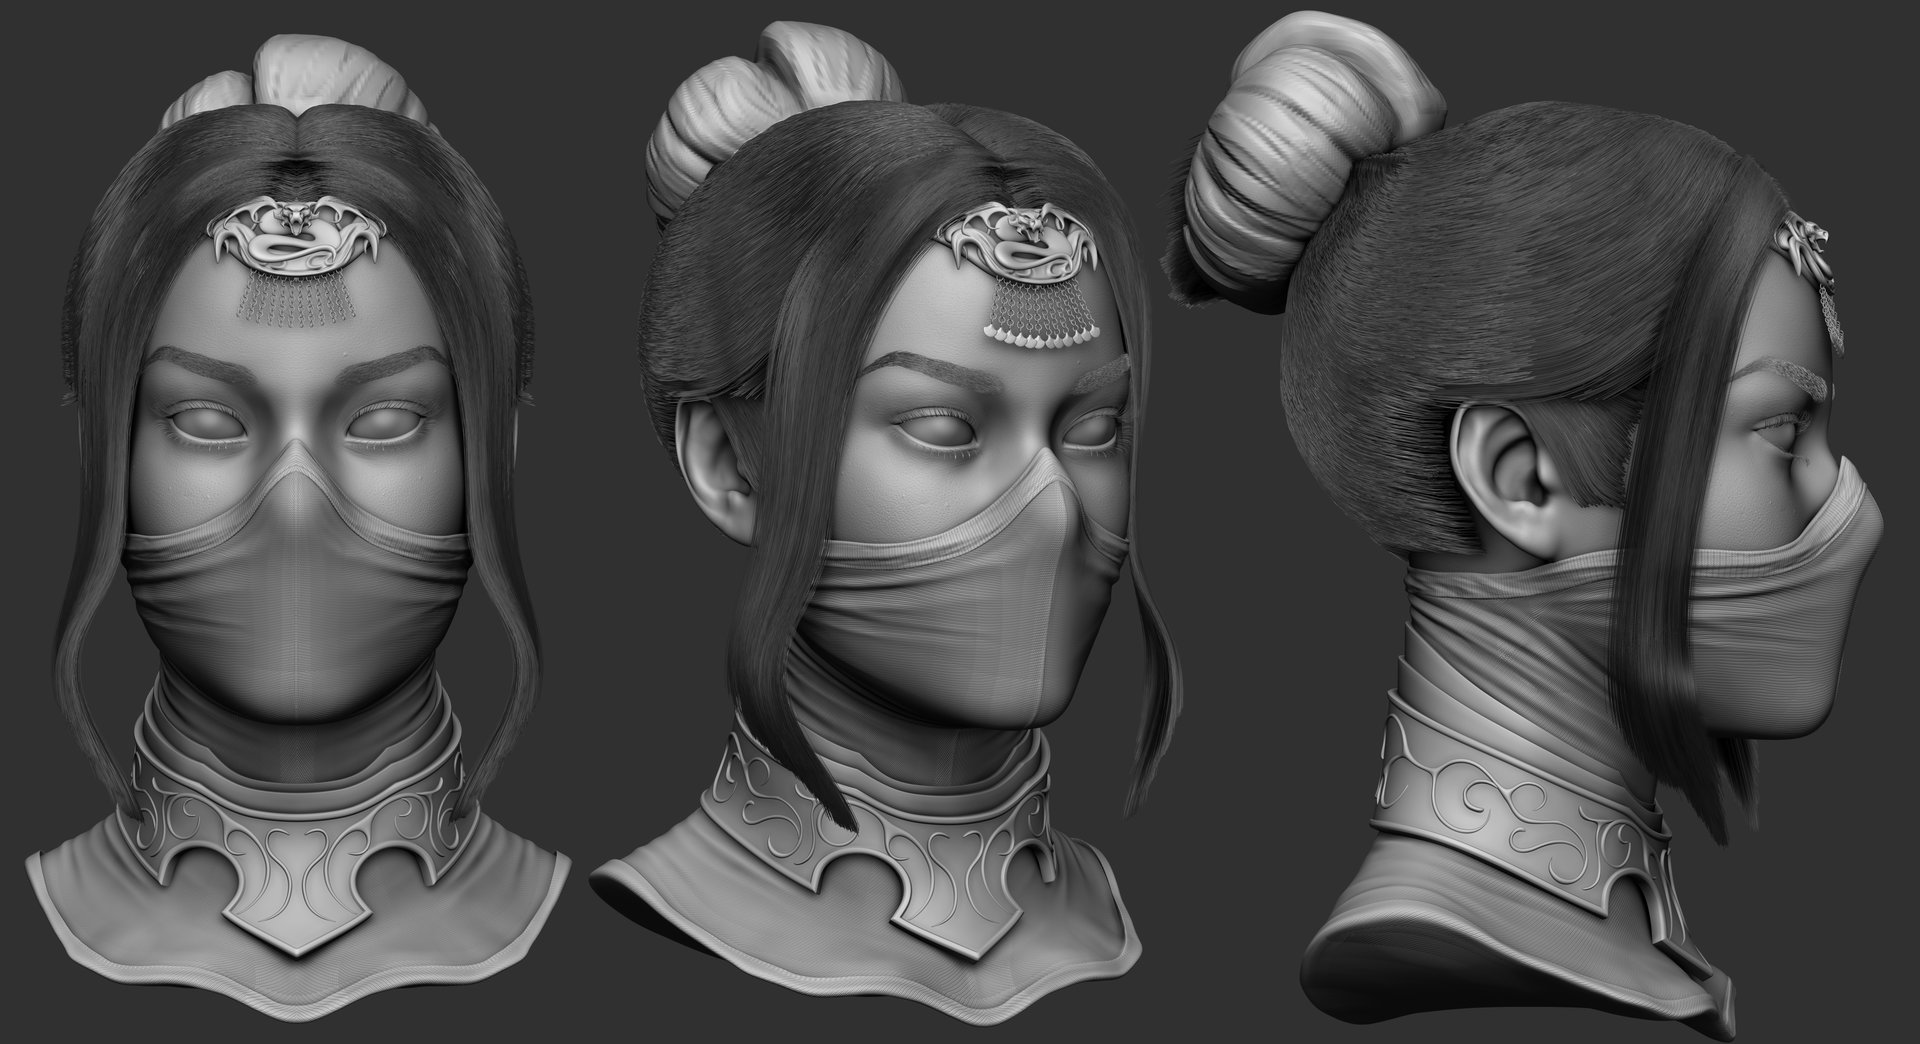 I'd used sculpts as placeholders to get an idea of shapes and if it looked alright.